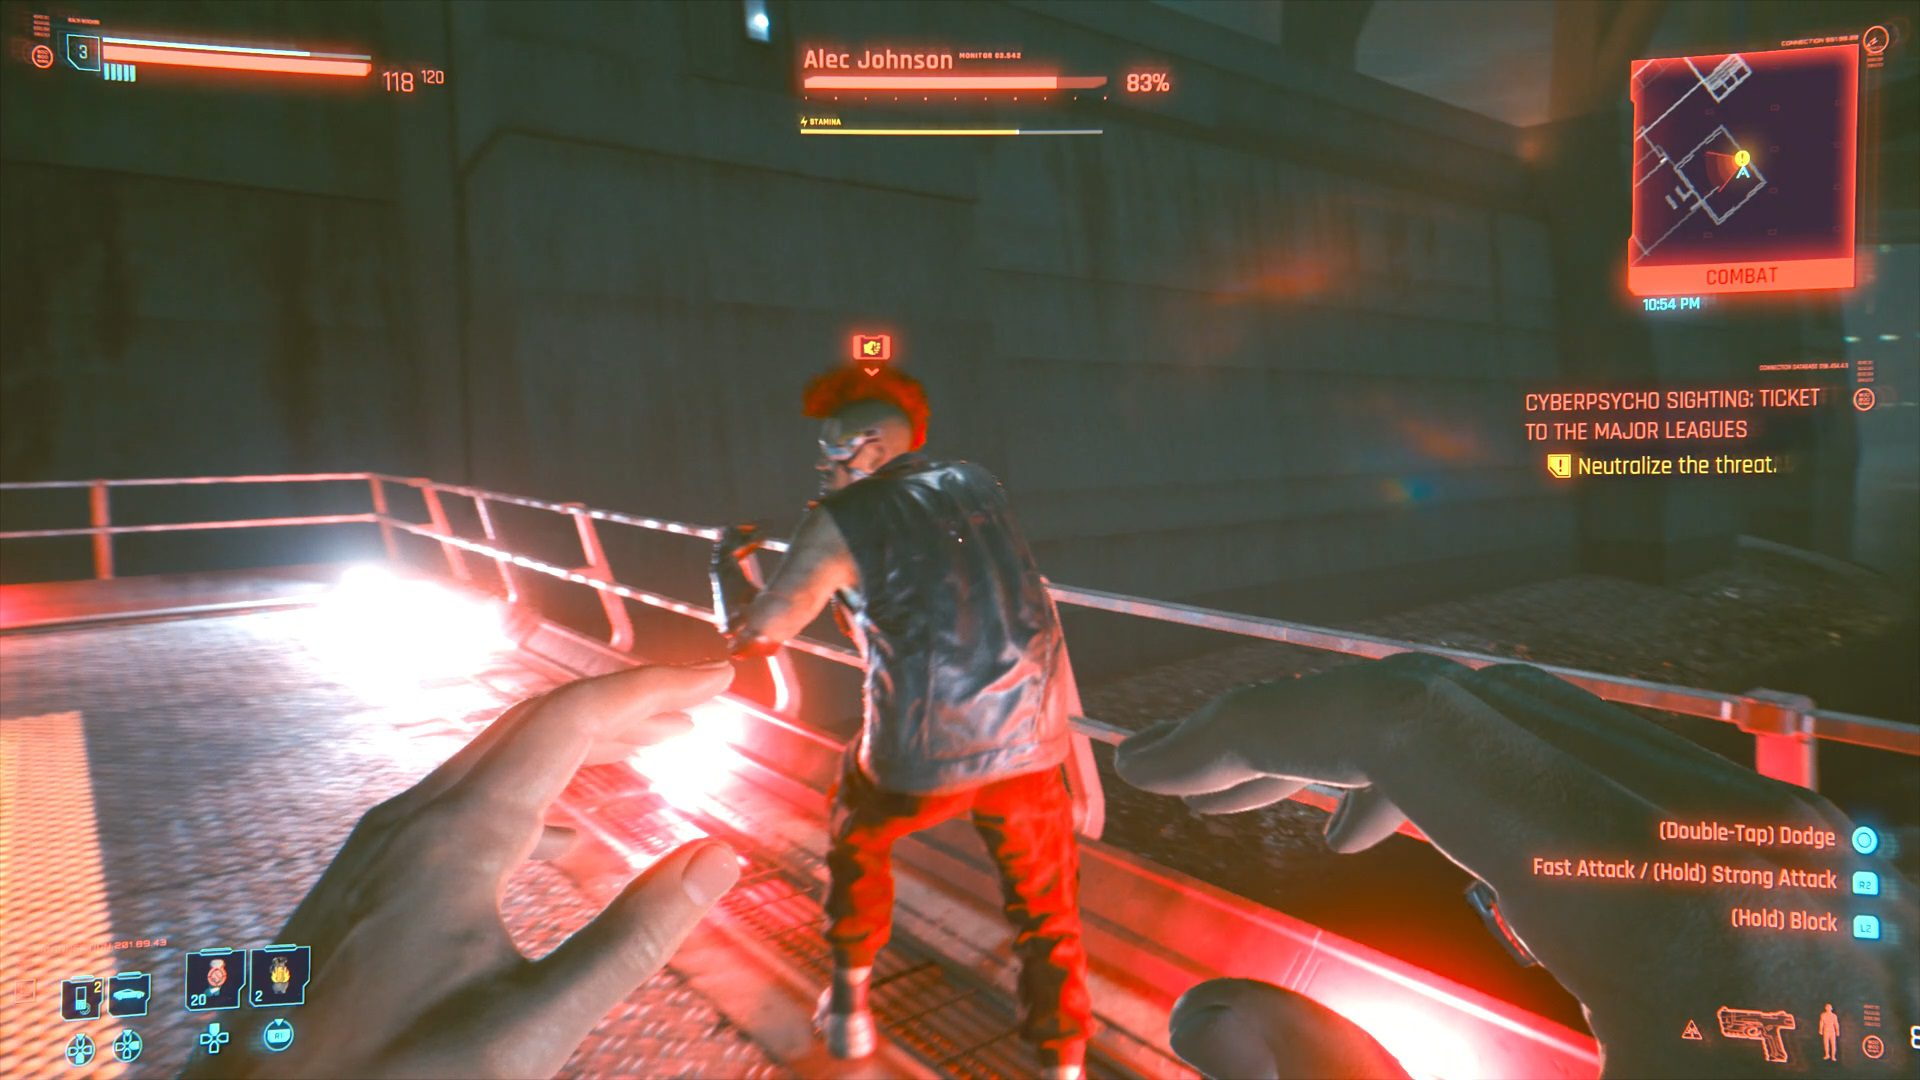 Cyberpunk 2077 Ticket to the Major Leagues Cyberpsycho Sighting Gig